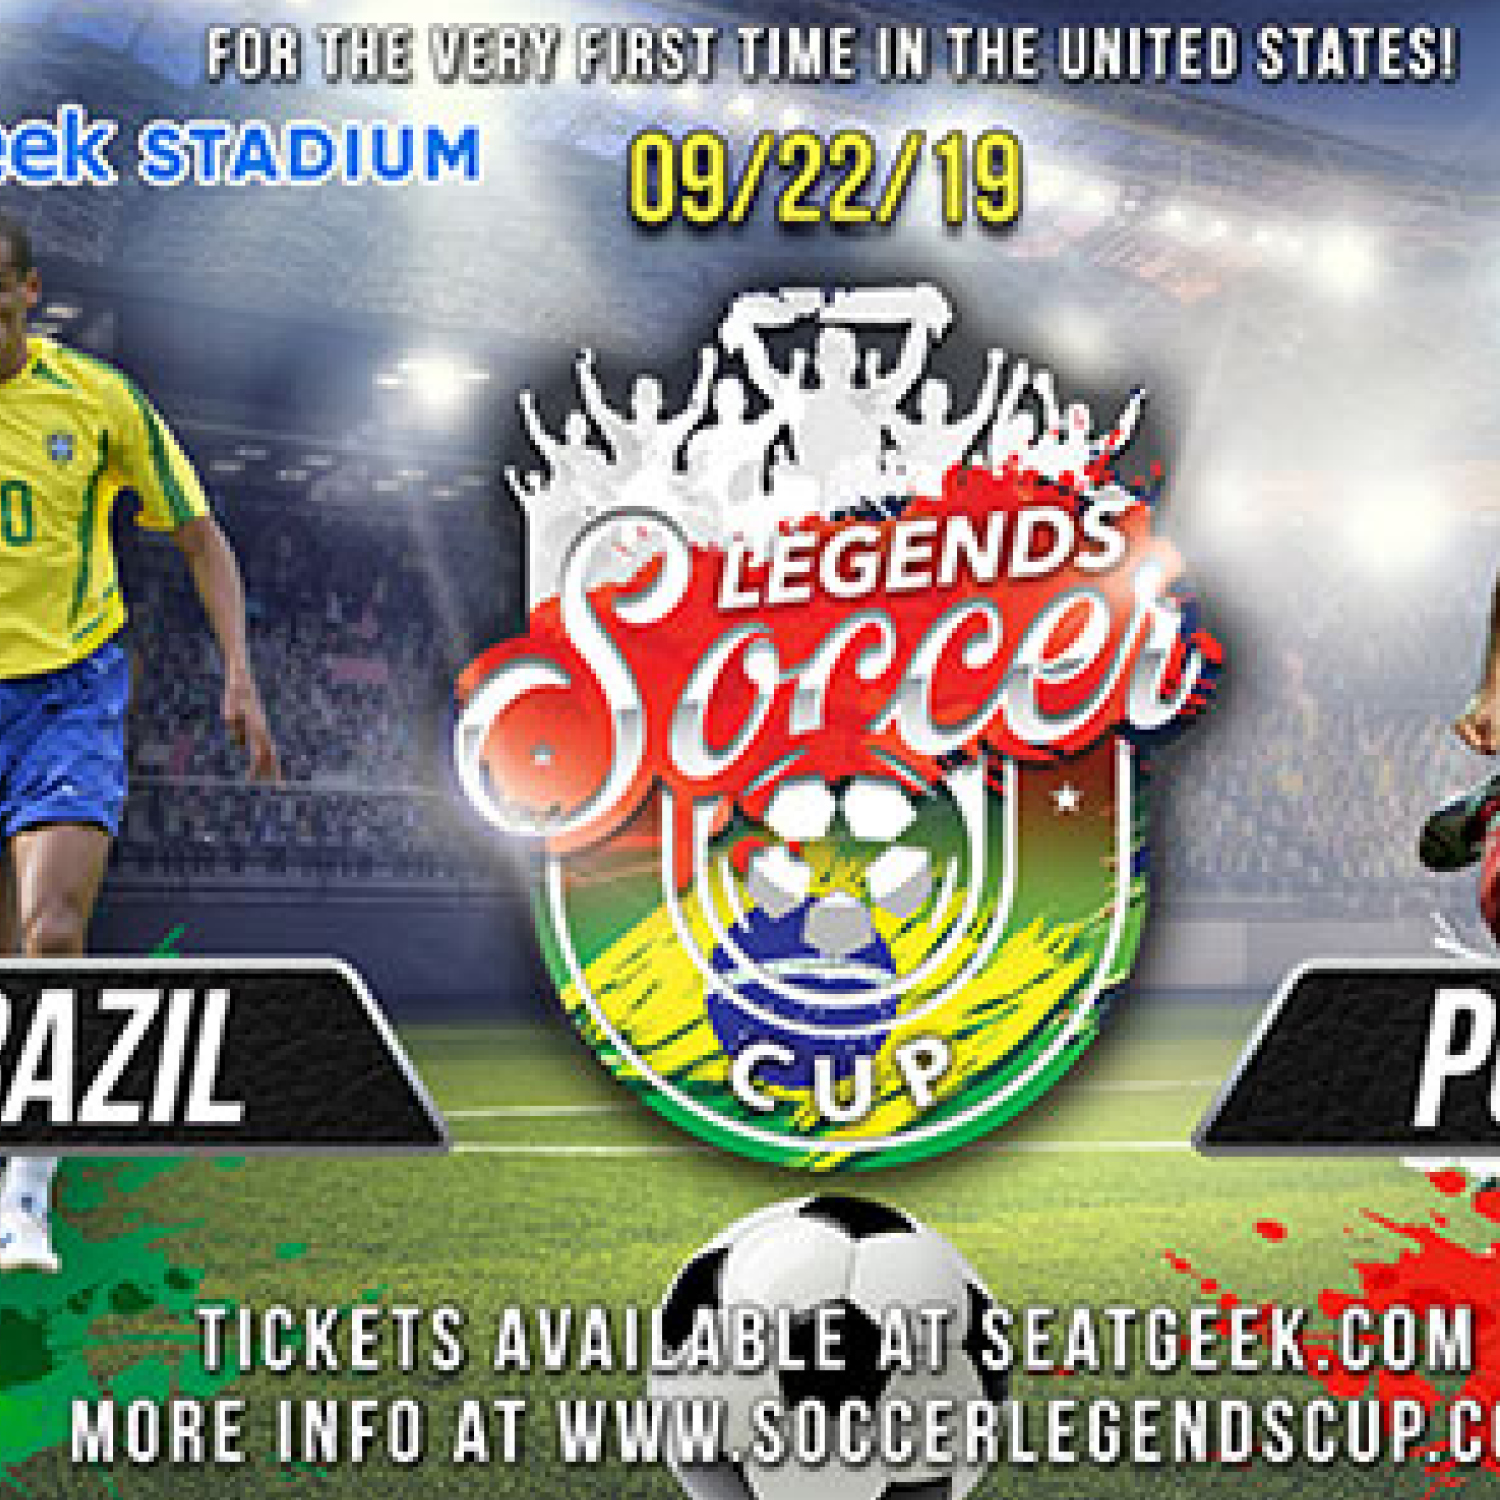 Legends Soccer Cup: Brazil vs Poland - Sunday, September 22, 2019 • 1:30pm